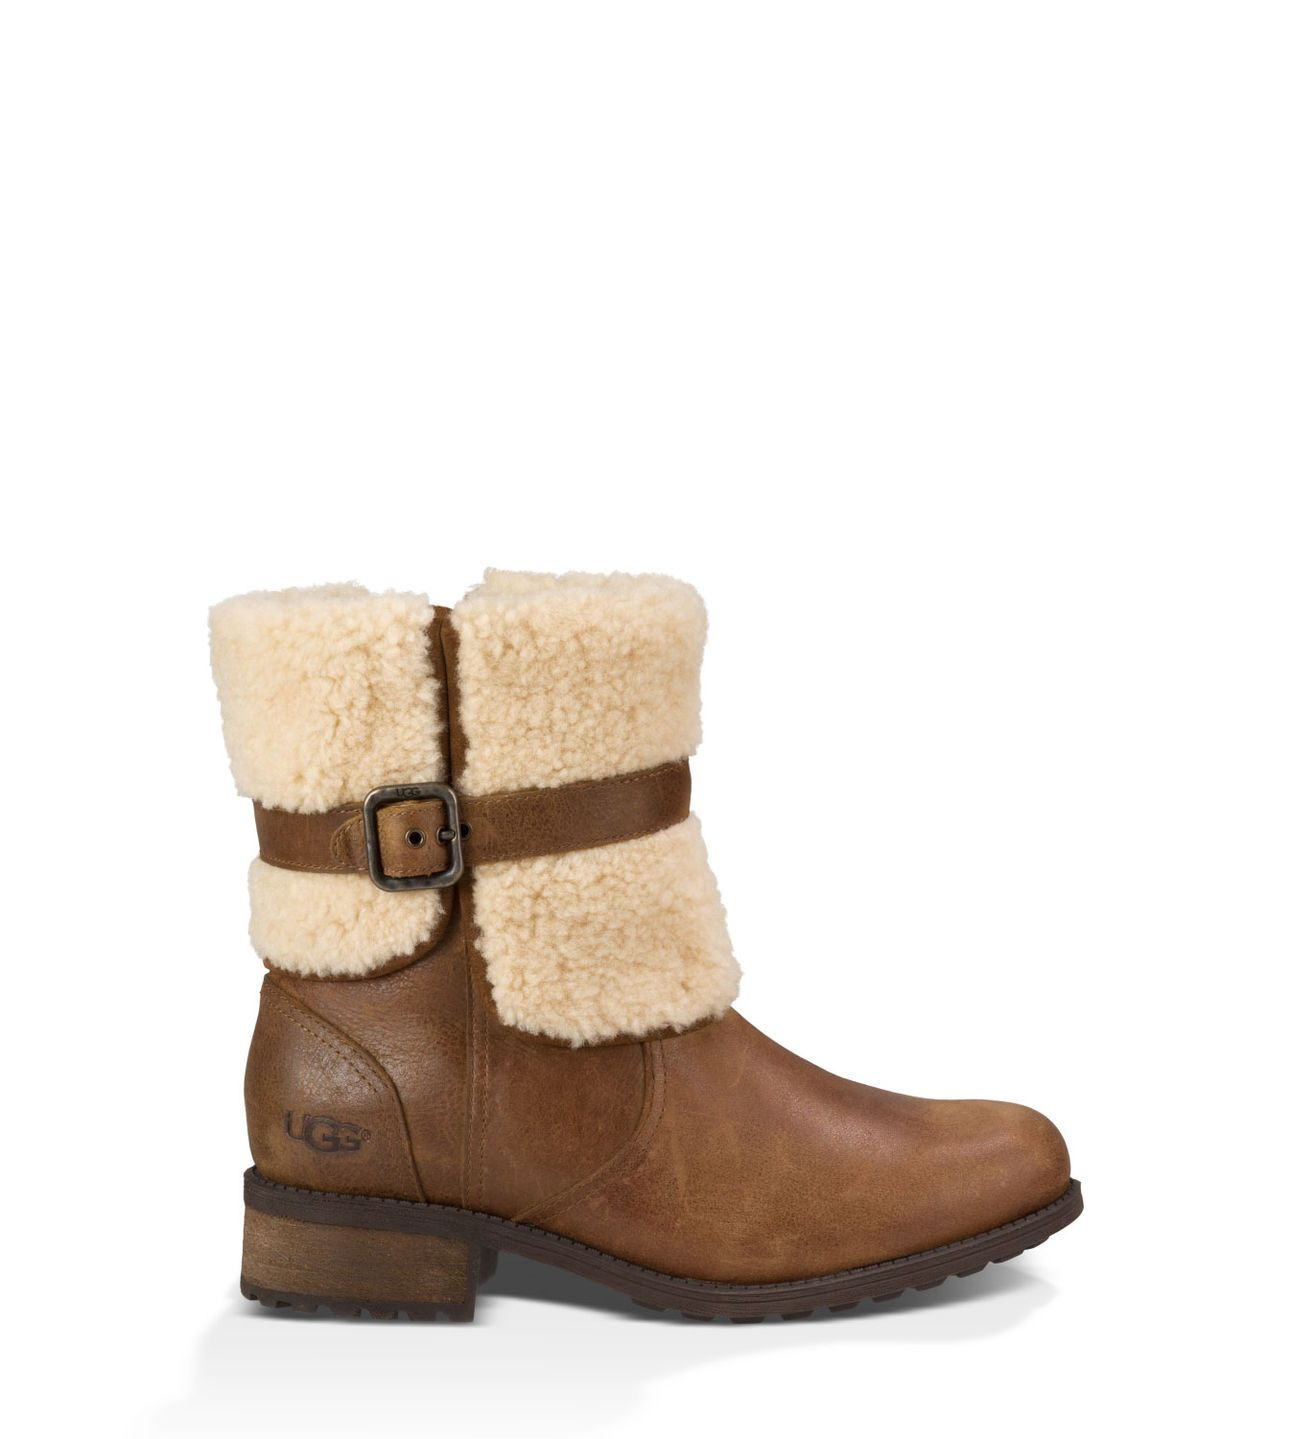 c5f62e3486d Shop our collection of women's sheepskin cuff boots including the ...